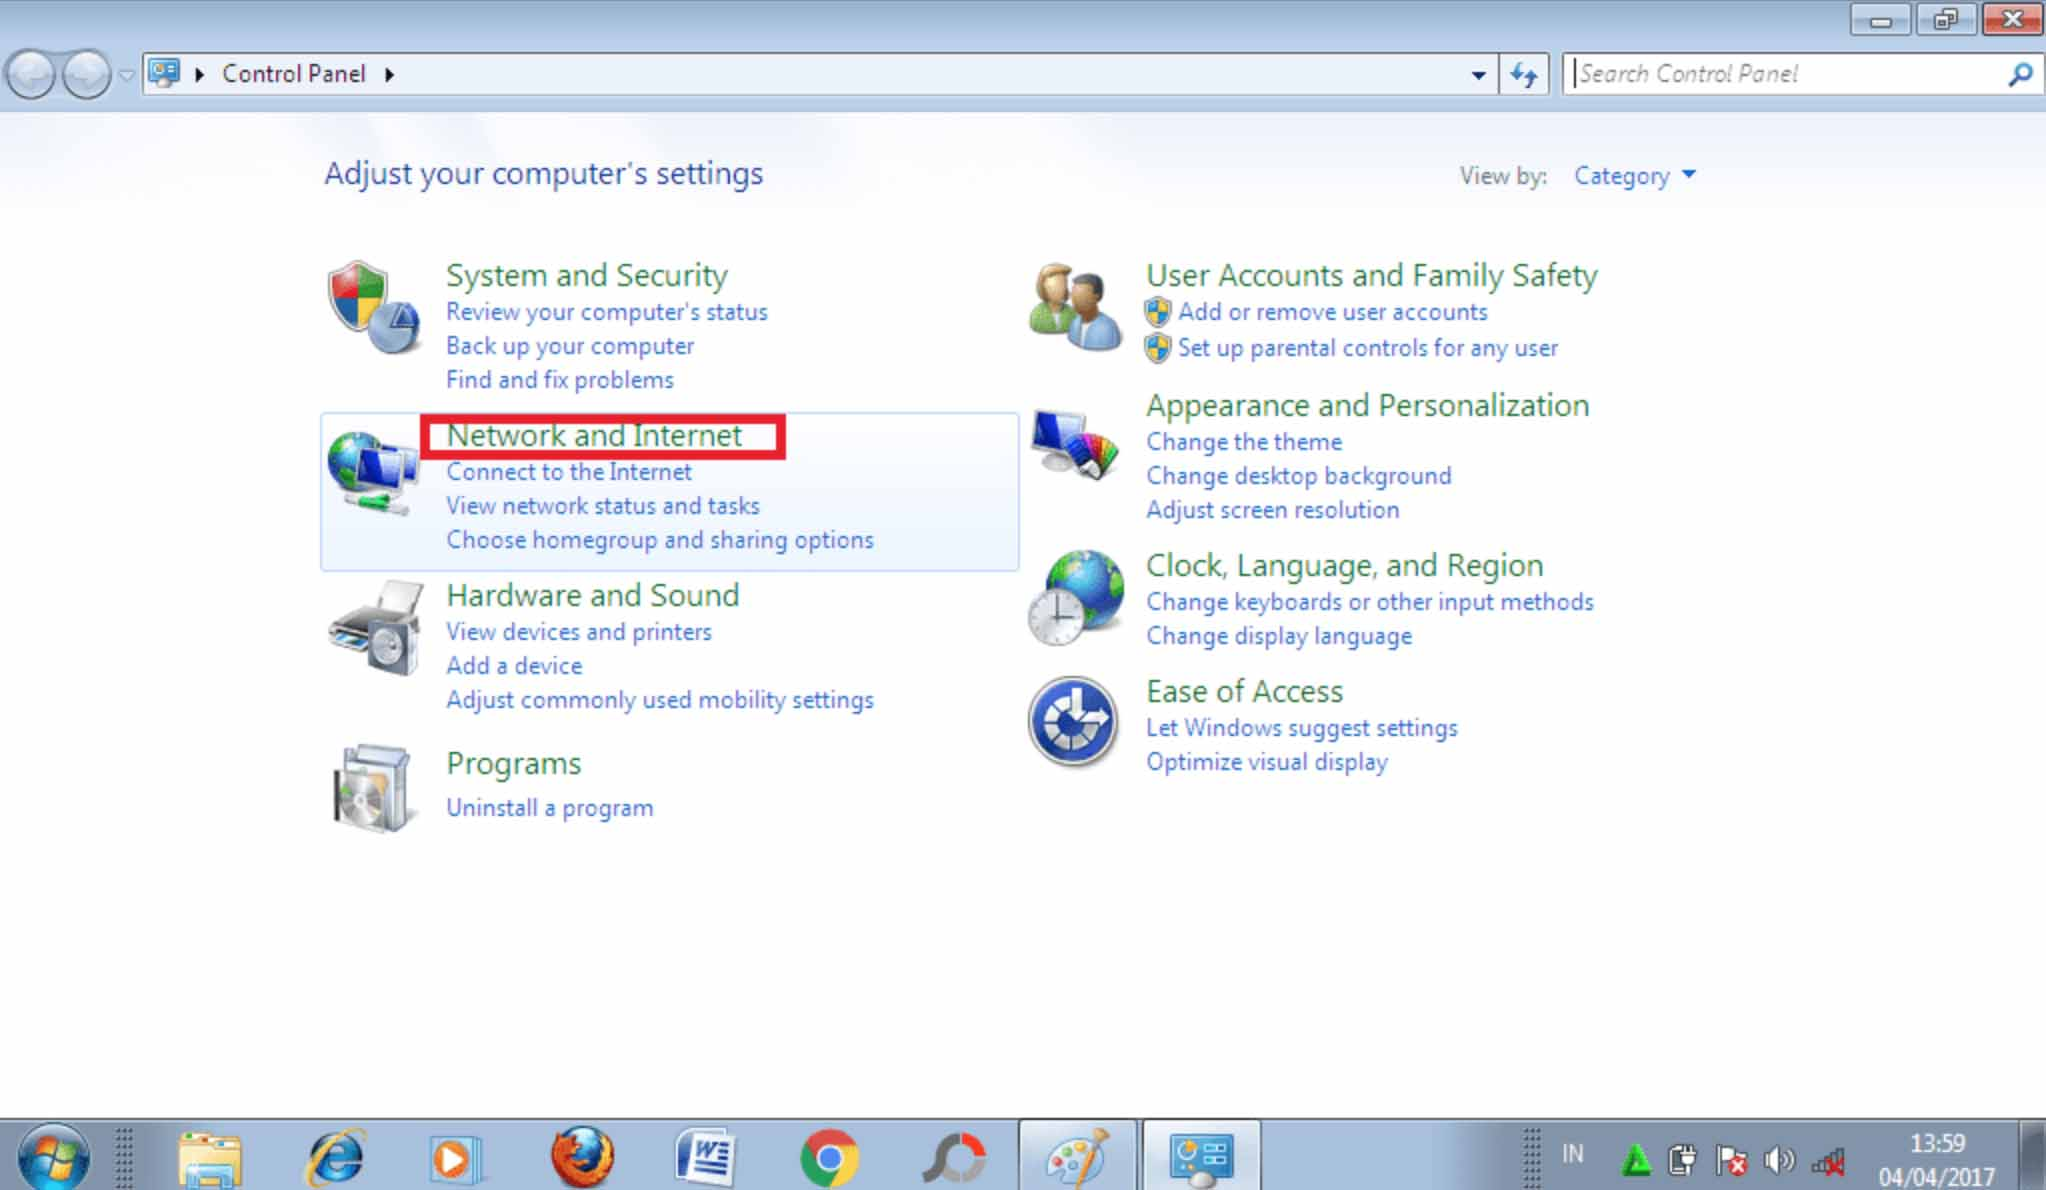 cara mengetahui password wifi di laptop windows 7